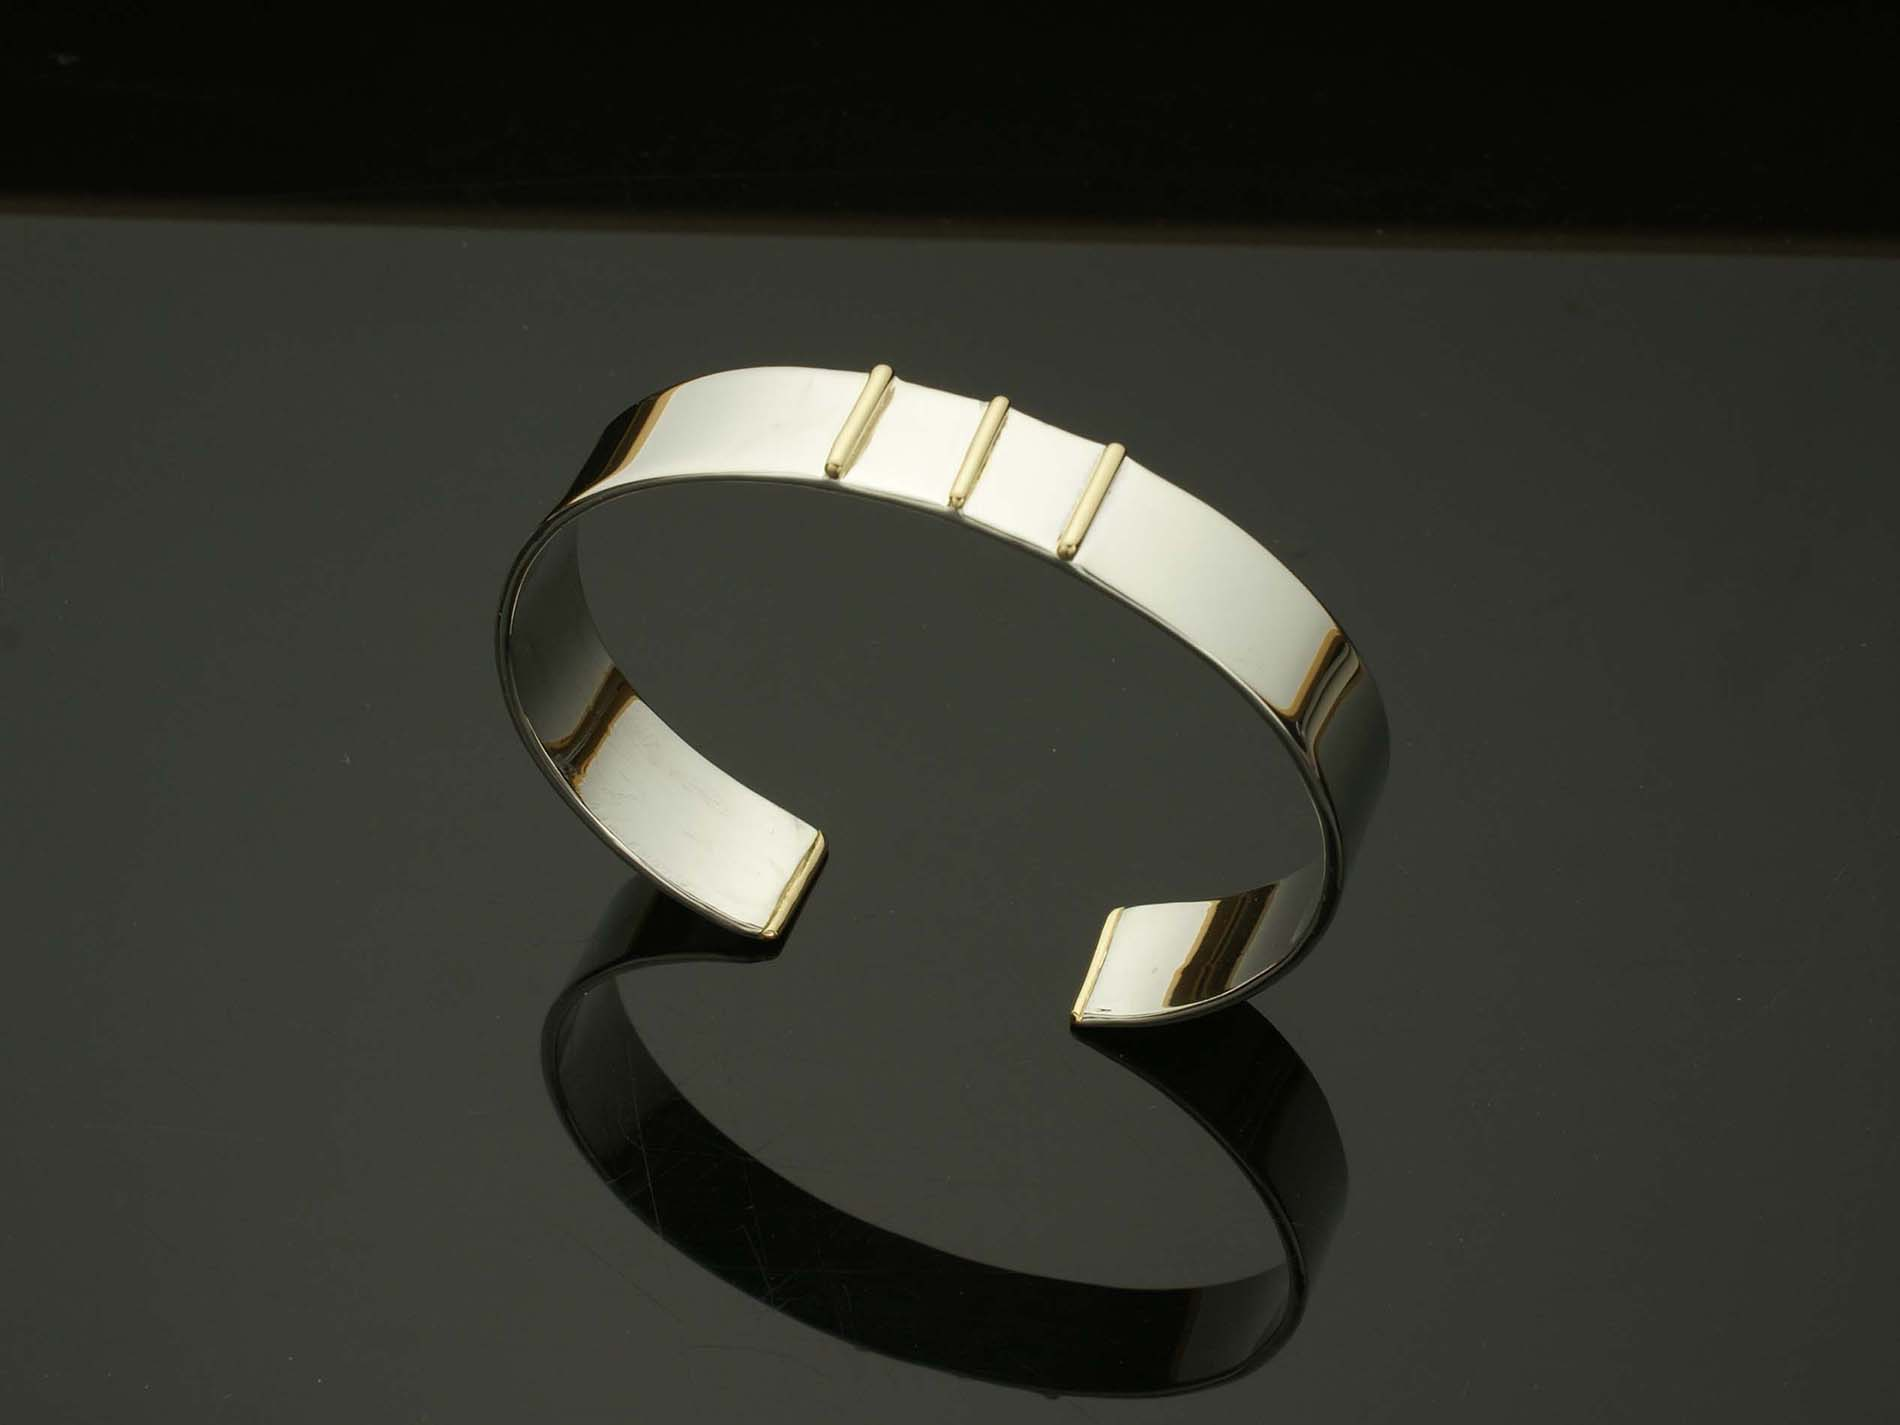 Silver Cuff with 2 Gold Bars